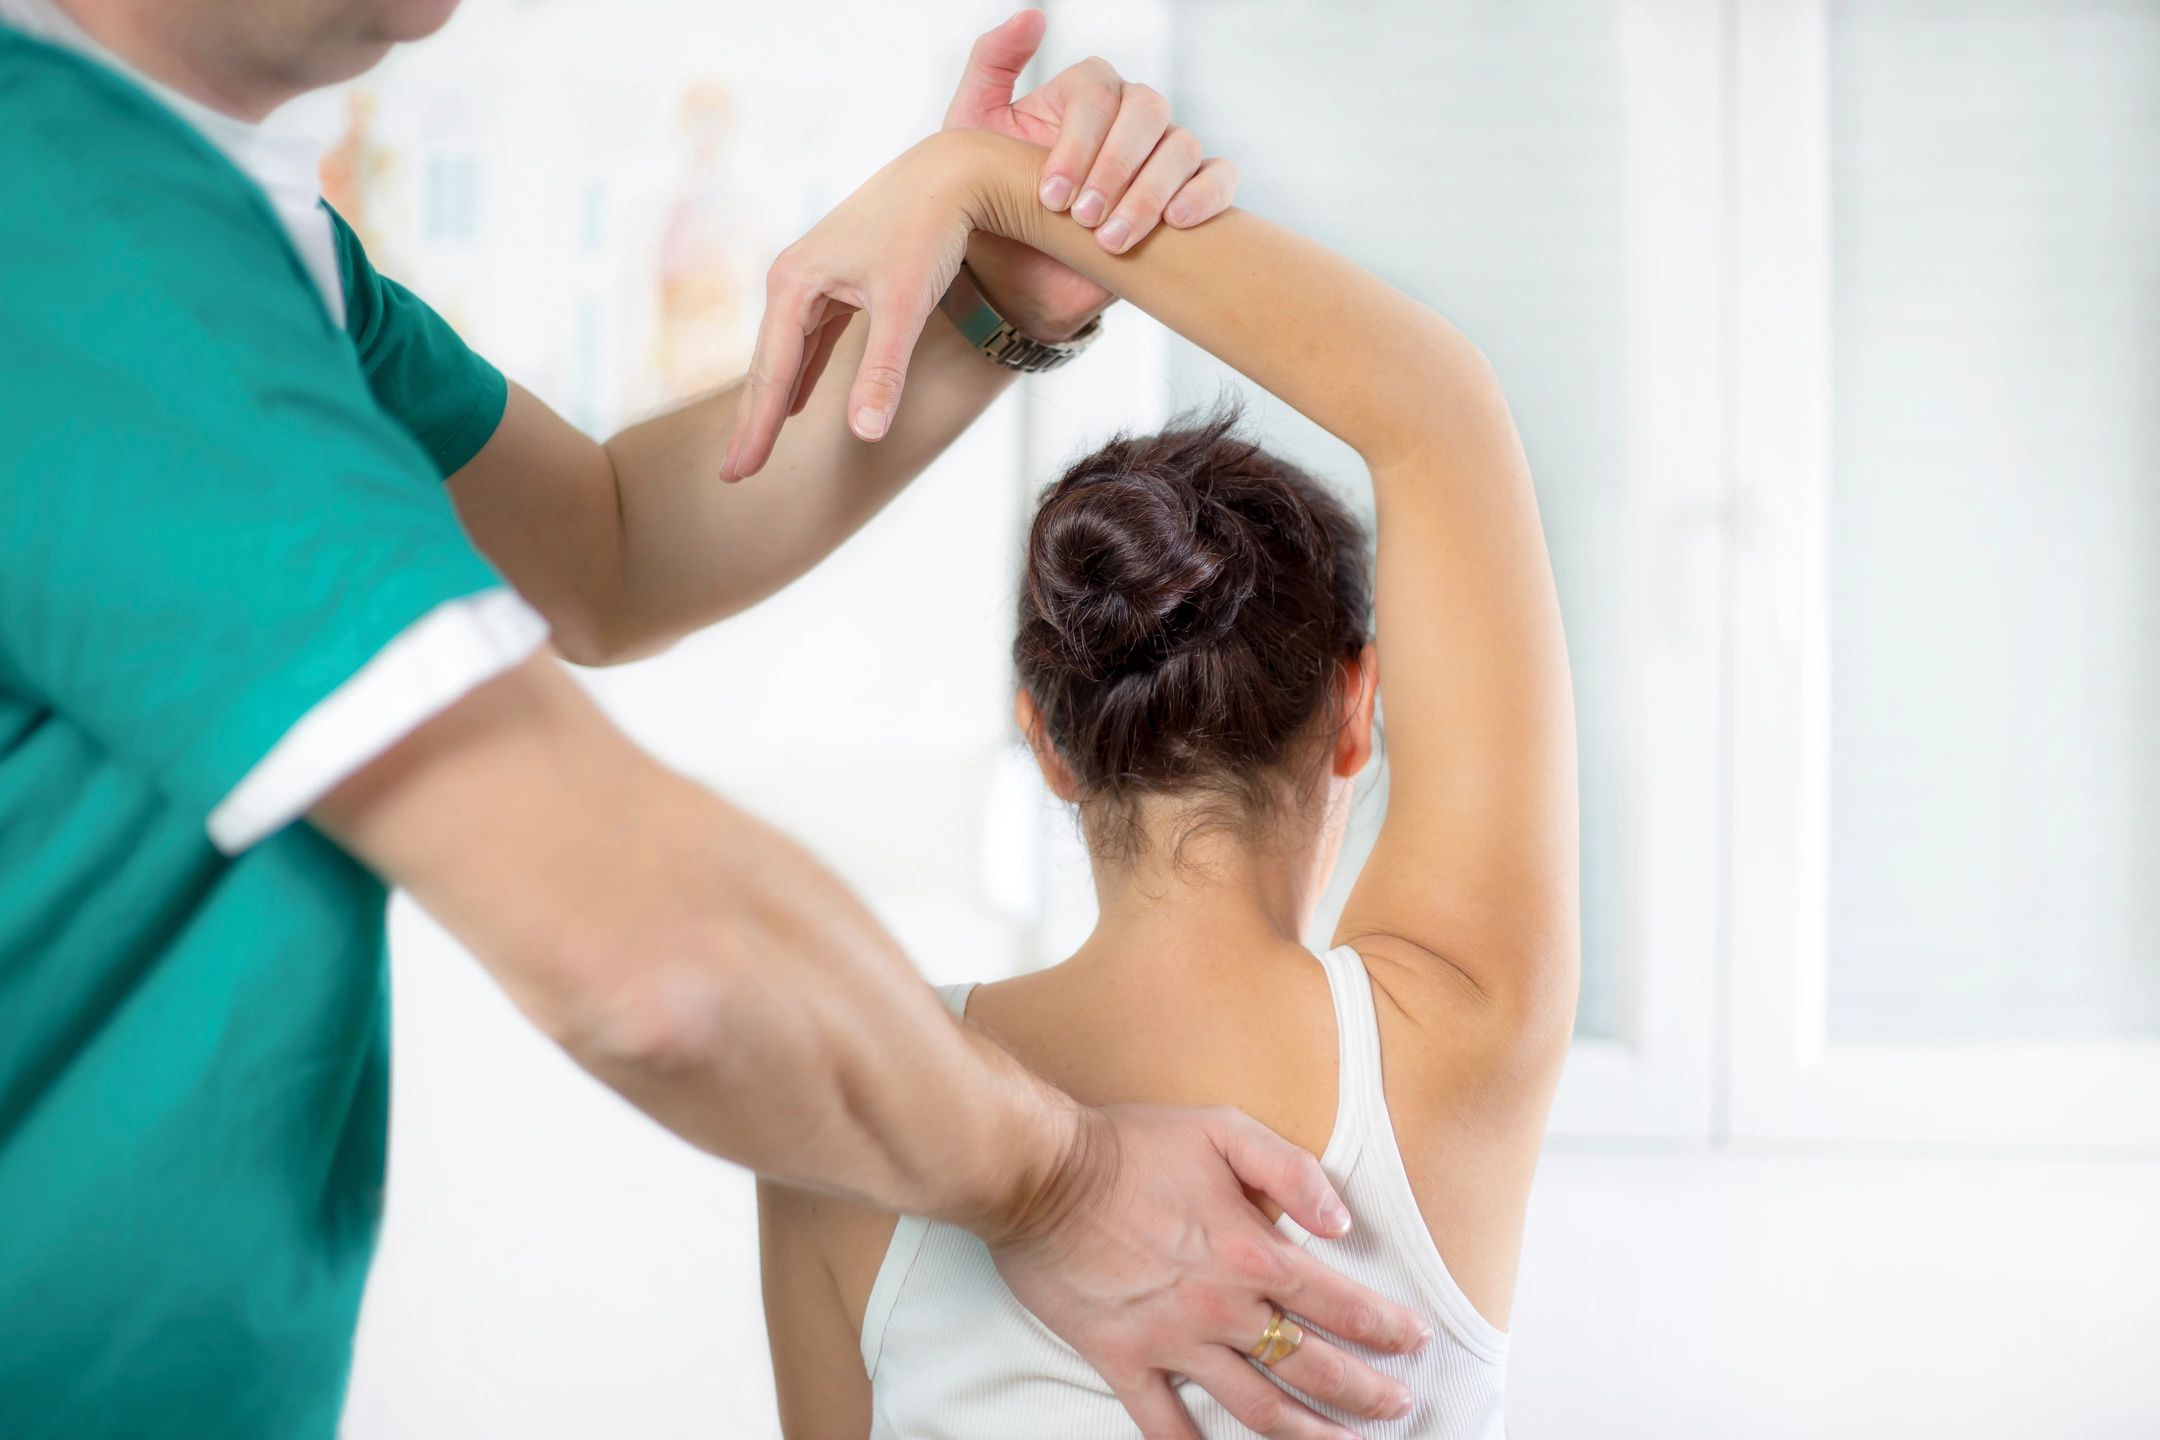 Physical Therapy Shoulder Evaluation Image